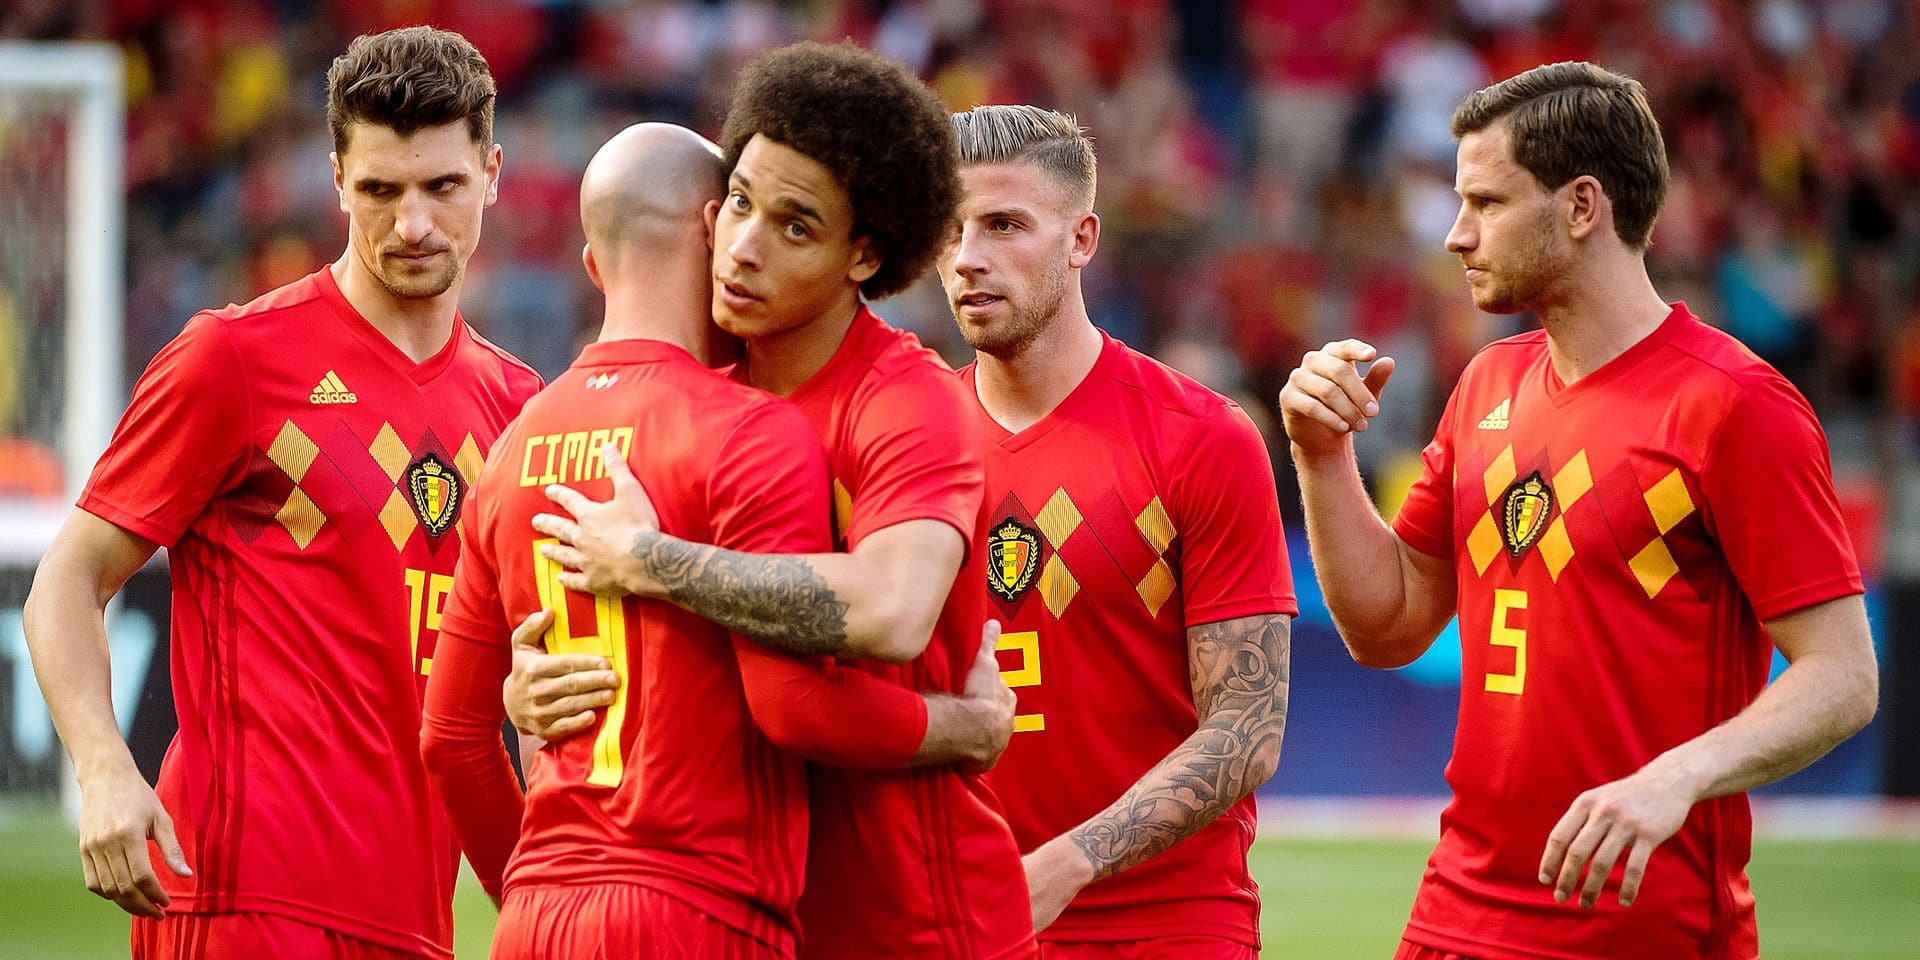 Belgium, Brussels, Jun 06, 2018 - Friendly game between Belgium national team, The Red Devils and Egyptian national soccer team. Both teams prepare the upcoming FIFA World Cup 2018 in Russia - Thomas Meunier , Laurent Ciman , Axel Witsel , Toby Alderweireld & Jan Vertonghen Copyright Danny Gys / Reporters Reporters / GYS